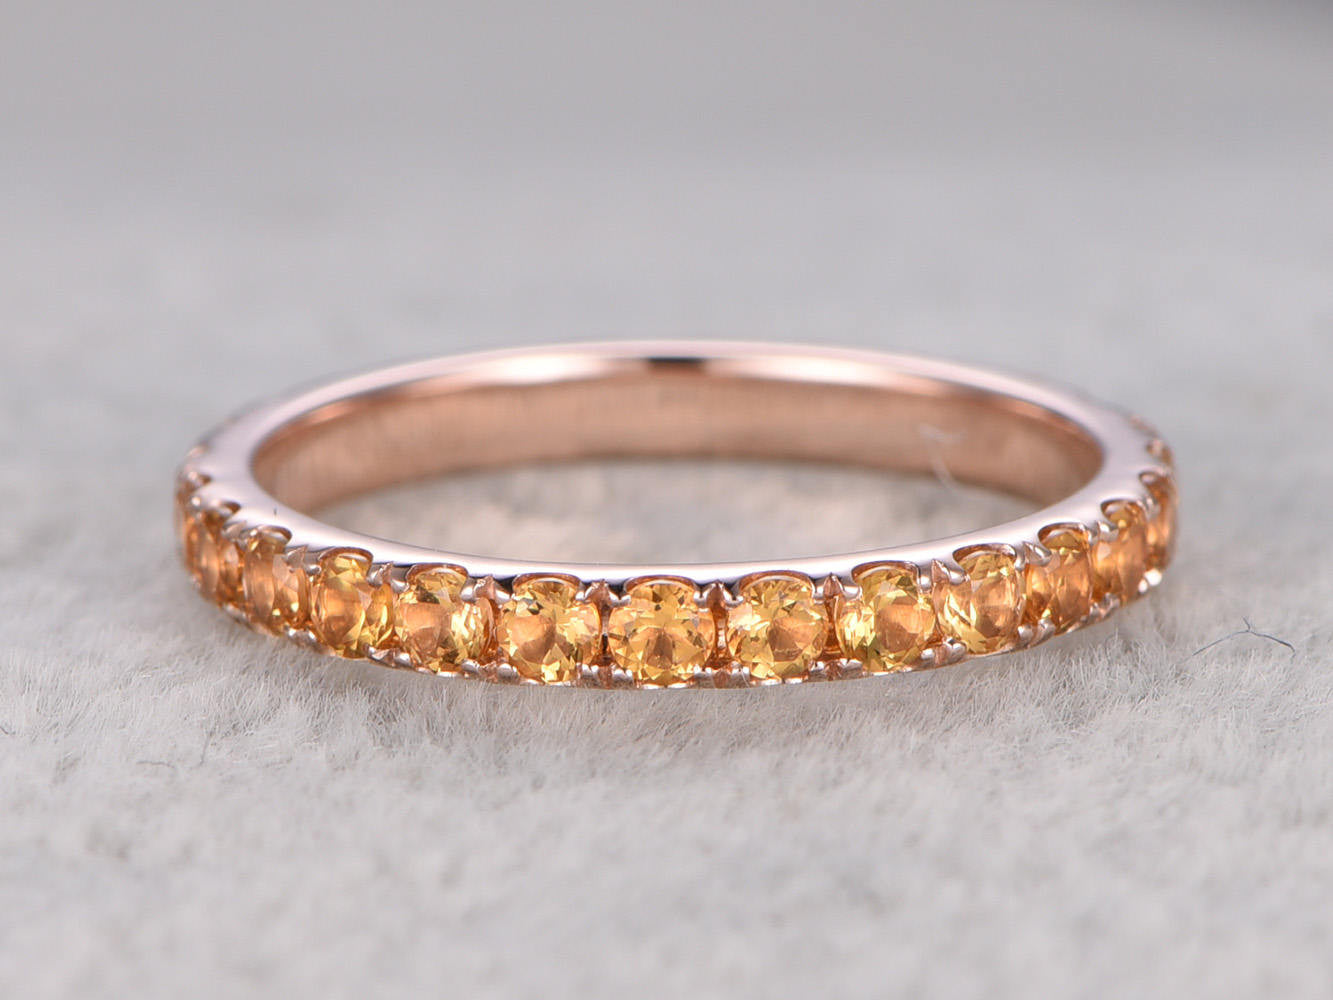 Full eternity Citrine Wedding Band,Solid 14K Rose gold,Anniversary Ring,Engagement stacking ring,Prong Set,2mm Yellow gem stone,can engrave